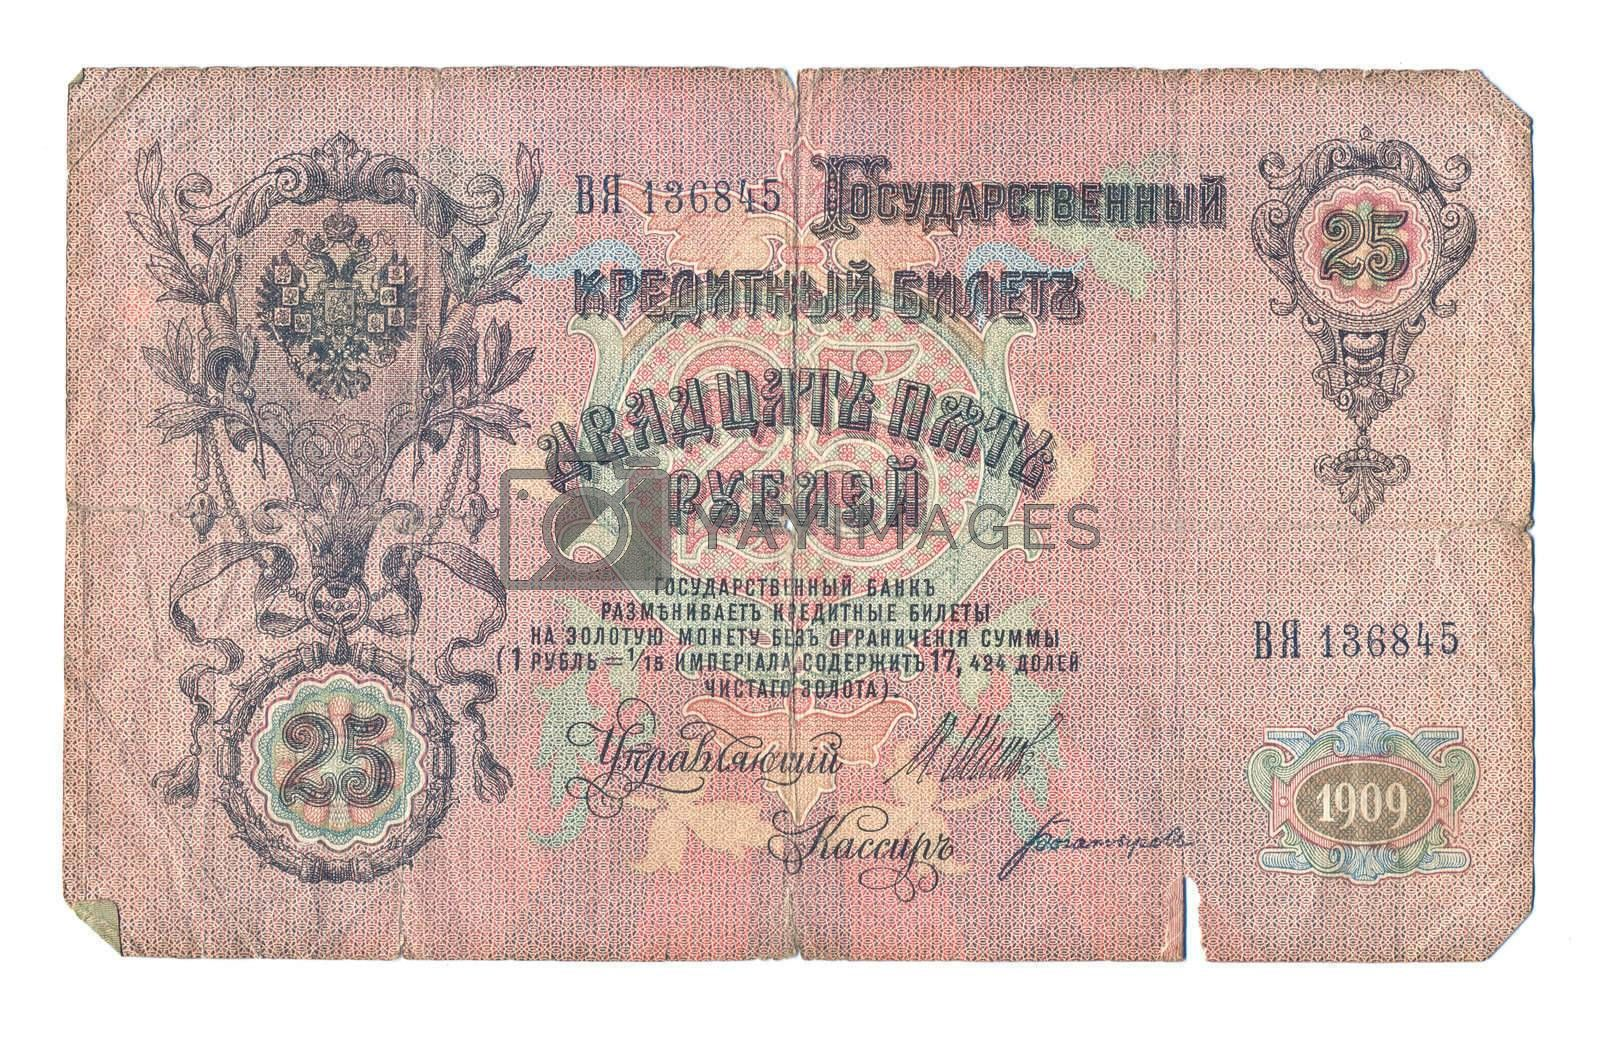 The scanned monetary denomination which is a museum piece, advantage in 25 roubles, let out at the time of Imperial Russia